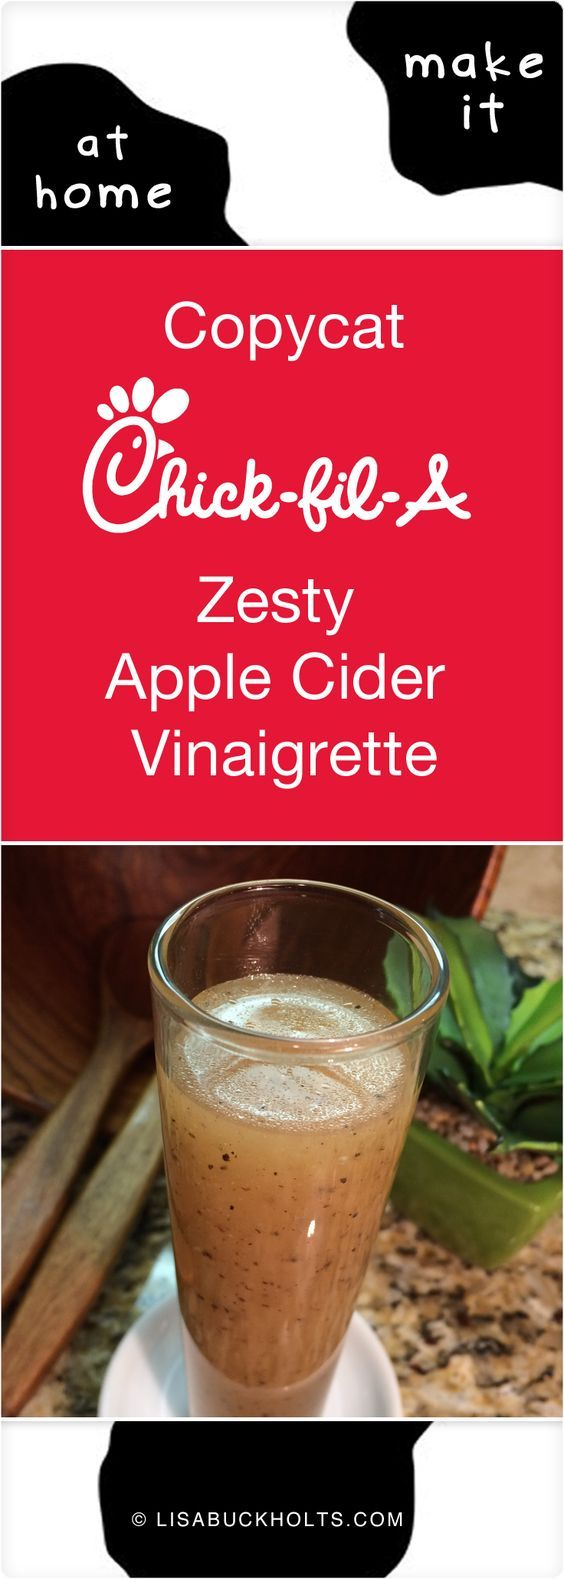 Copycat Chick-fil-A Zesty Apple Cider Vinaigrette. This dressing is amazing…the zing of the apple cider vinegar, hint of sweet pineapple and tangy lime juice, and warm heat of the freshly-cracked black pepper is a sure winner!